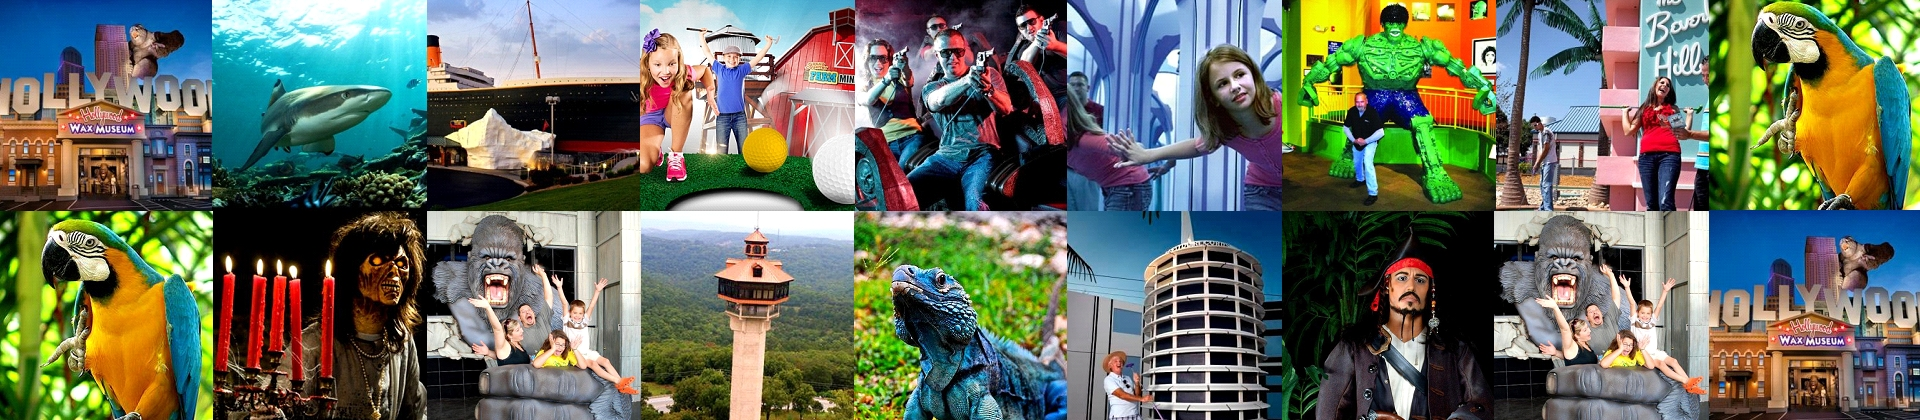 Branson Attraction Pass offers up to 36% off some of the most popular attractions and things to do in Branson, Missouri!